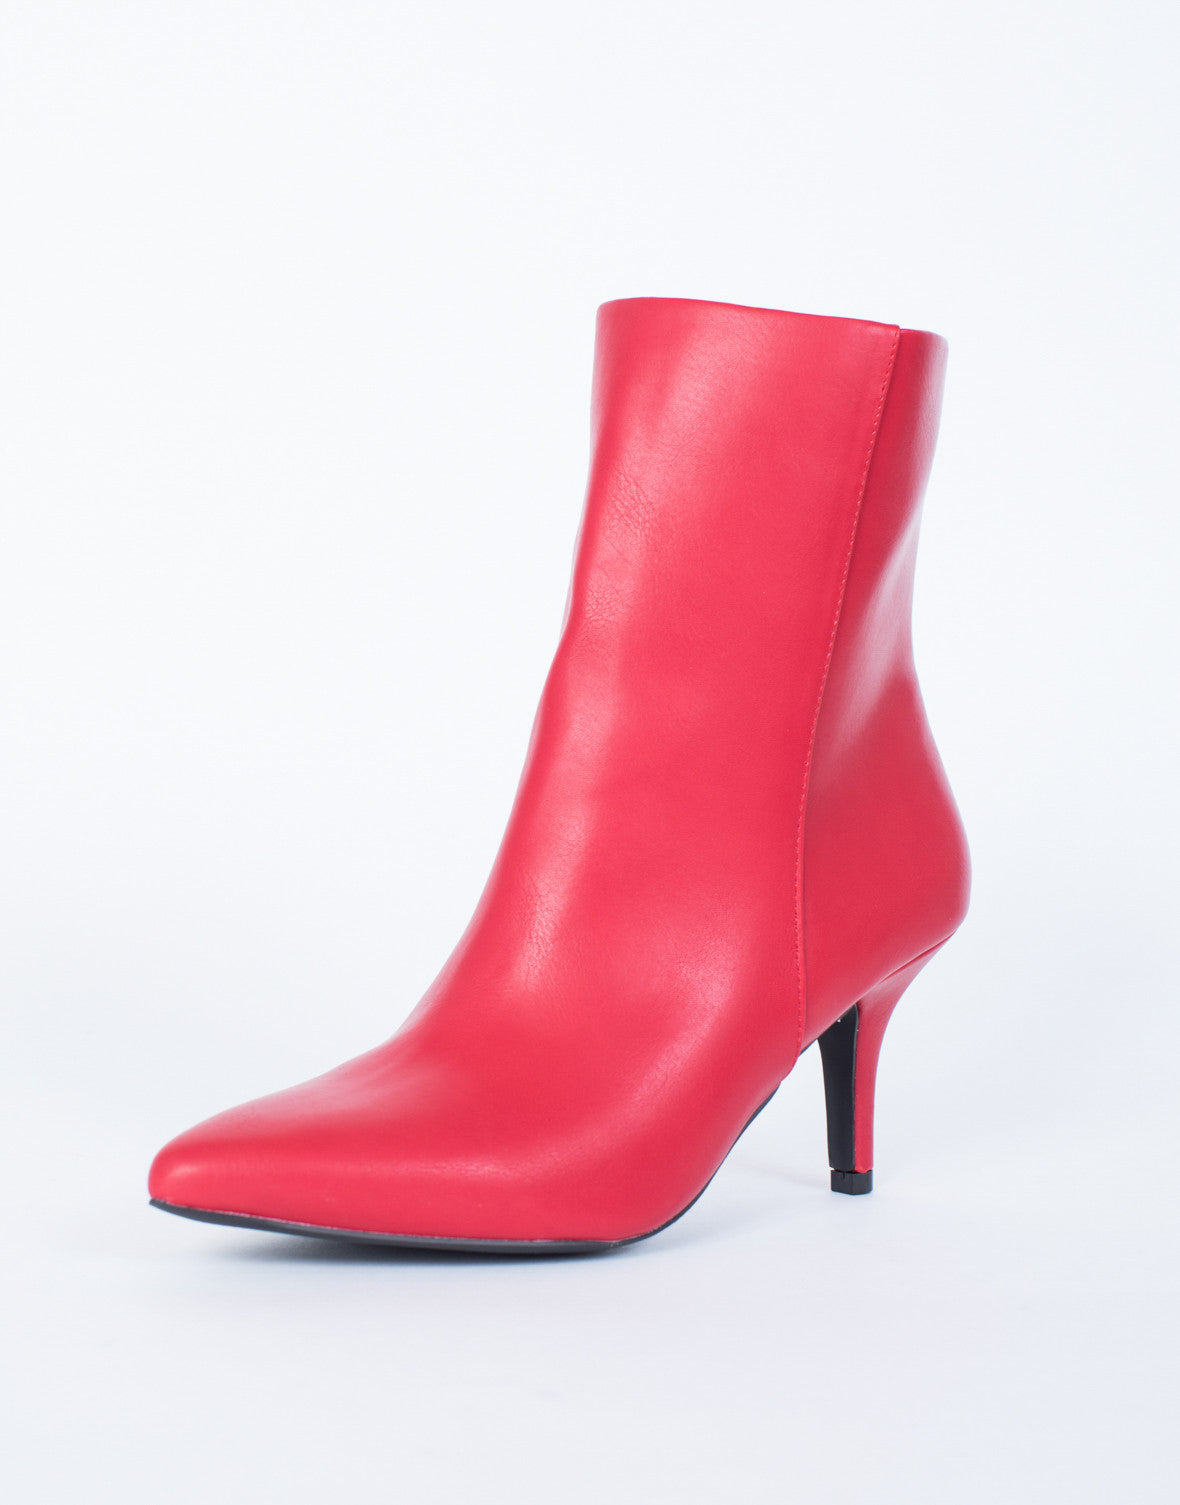 Red Miranda Ankle Boots - Side view